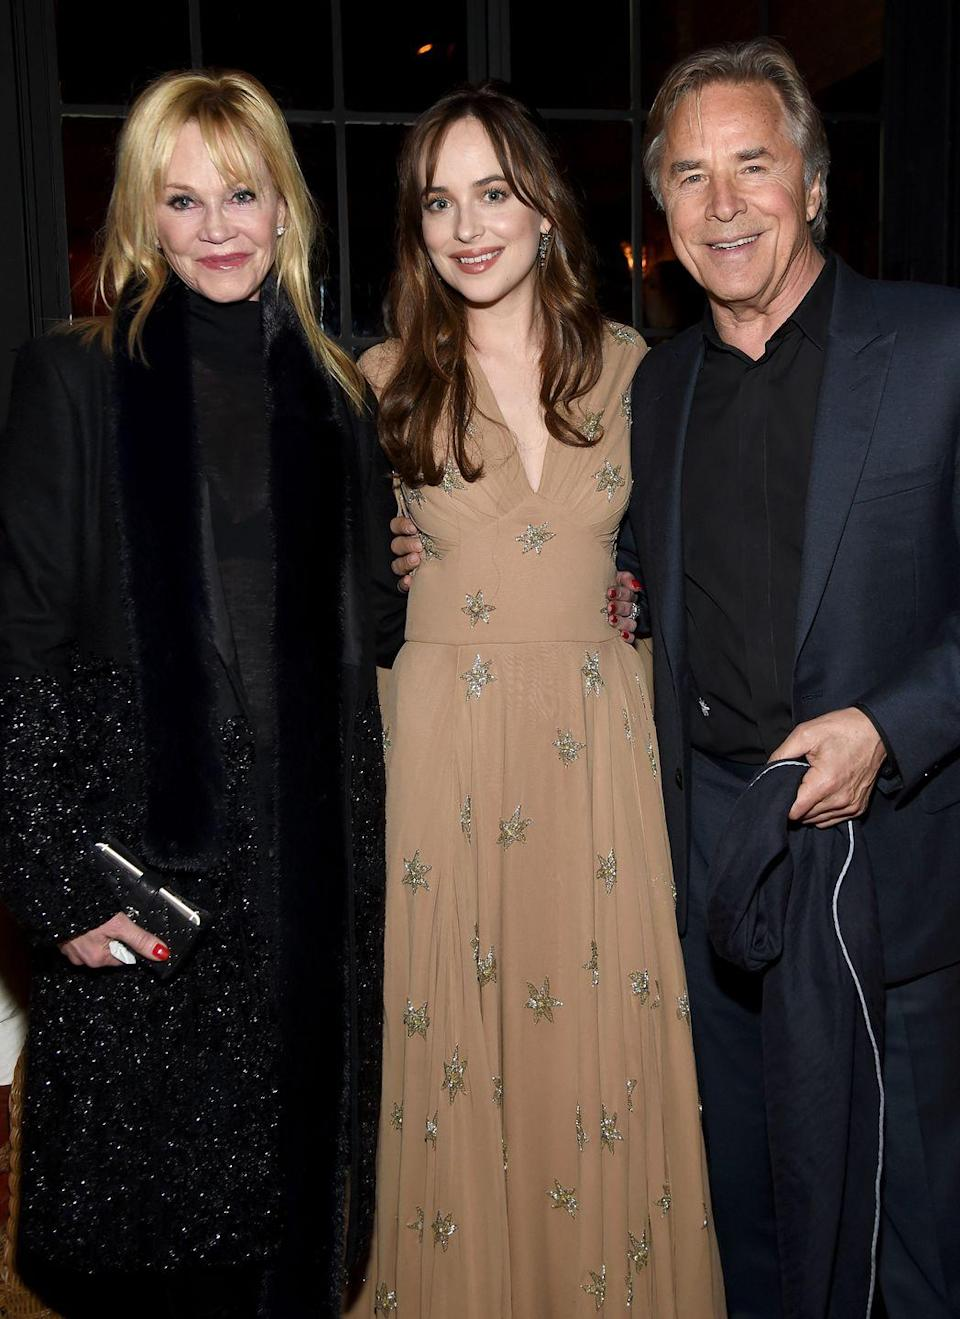 """<p><strong>Famous parent(s): </strong>actors Don Johnson and Melanie Griffith <br><strong>Wh</strong><strong>at it was like: </strong>As she has put it, she grew up watching her parents """"have sex with other people"""" on screen. """"I lost my mind! I couldn't deal with that at all.""""</p>"""